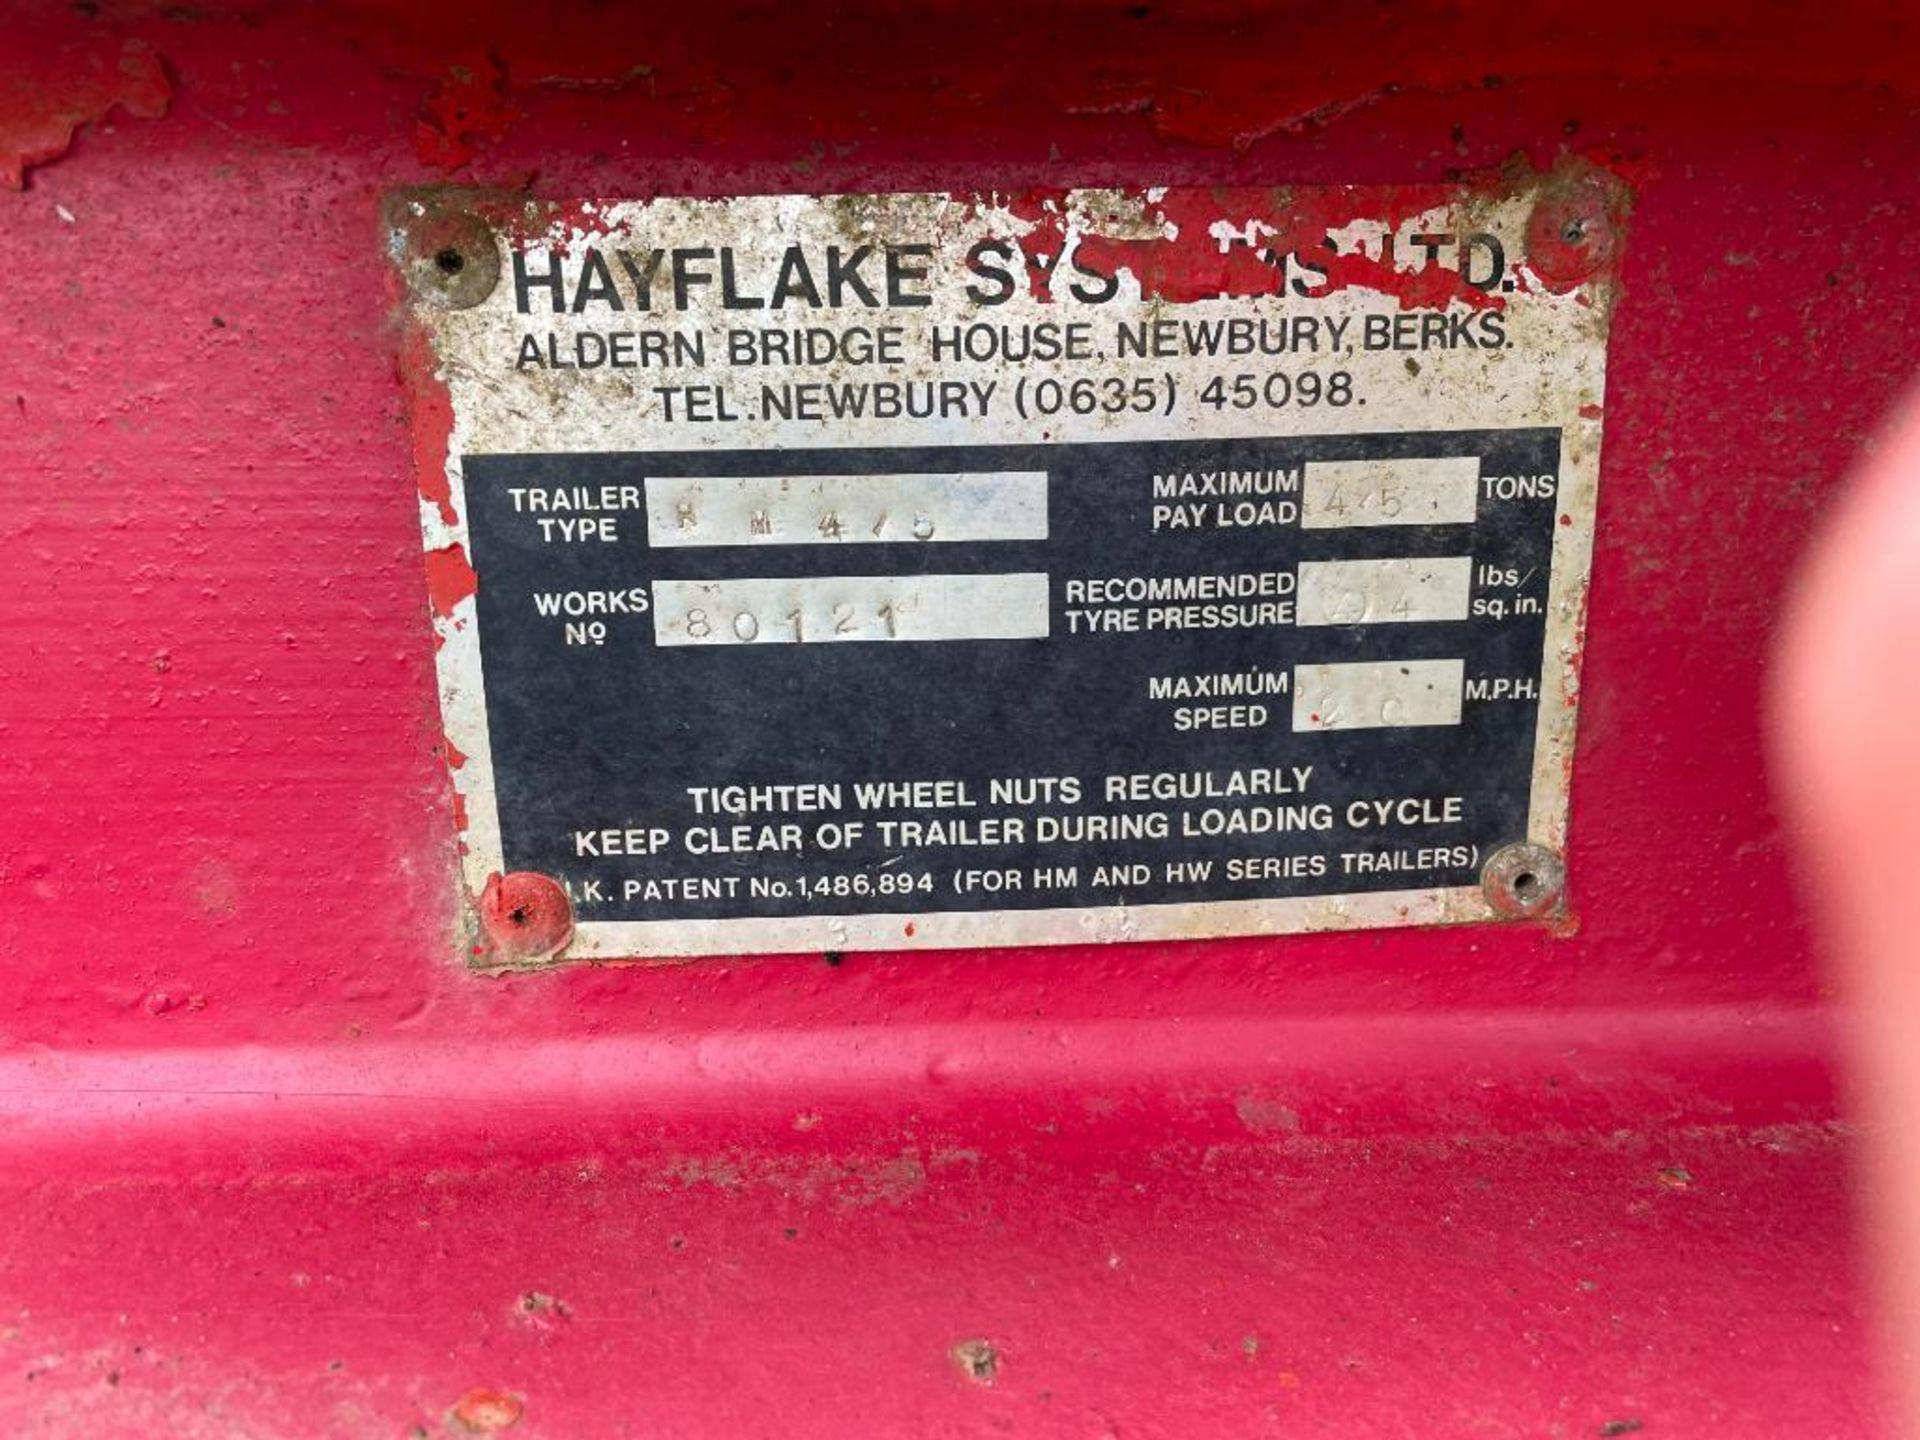 Hayflake Systems HM475, 4.5t single axle low loader trailer on 11.5/80-15.3 wheels and tyres. Serial - Image 4 of 4